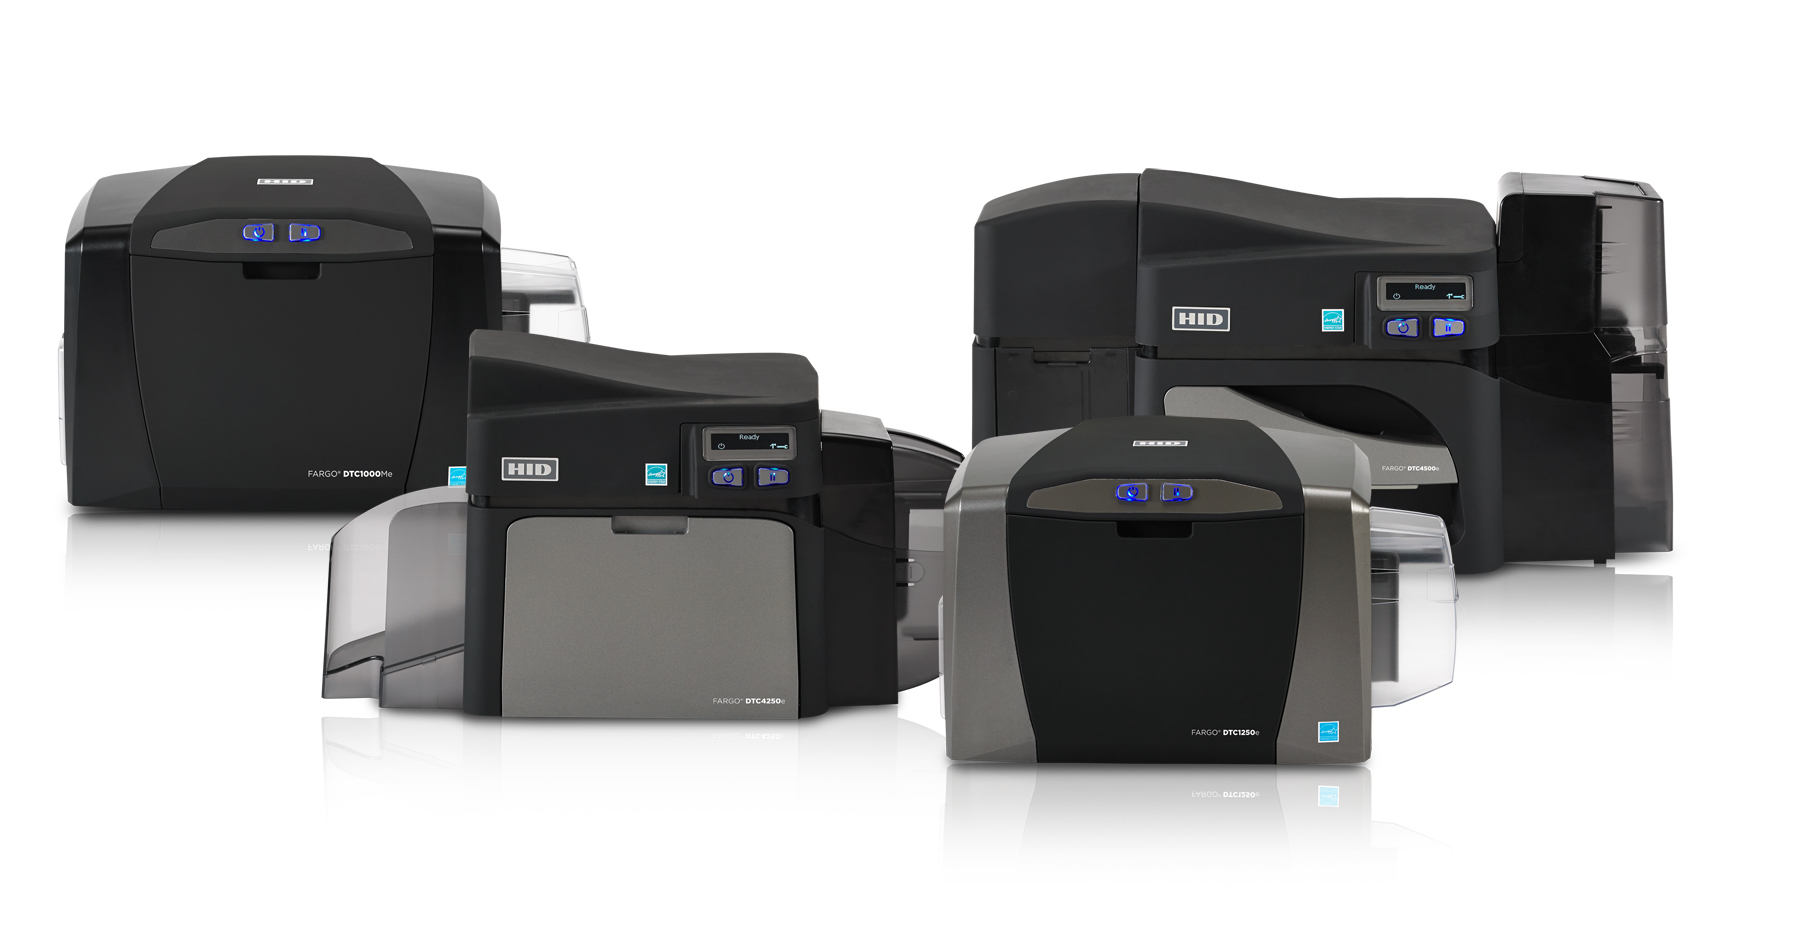 HID Global Enhances Proven FARGO Direct-to-Card Printer Line with Built-in Encoding, Faster Speeds and Optional Wi-Fi